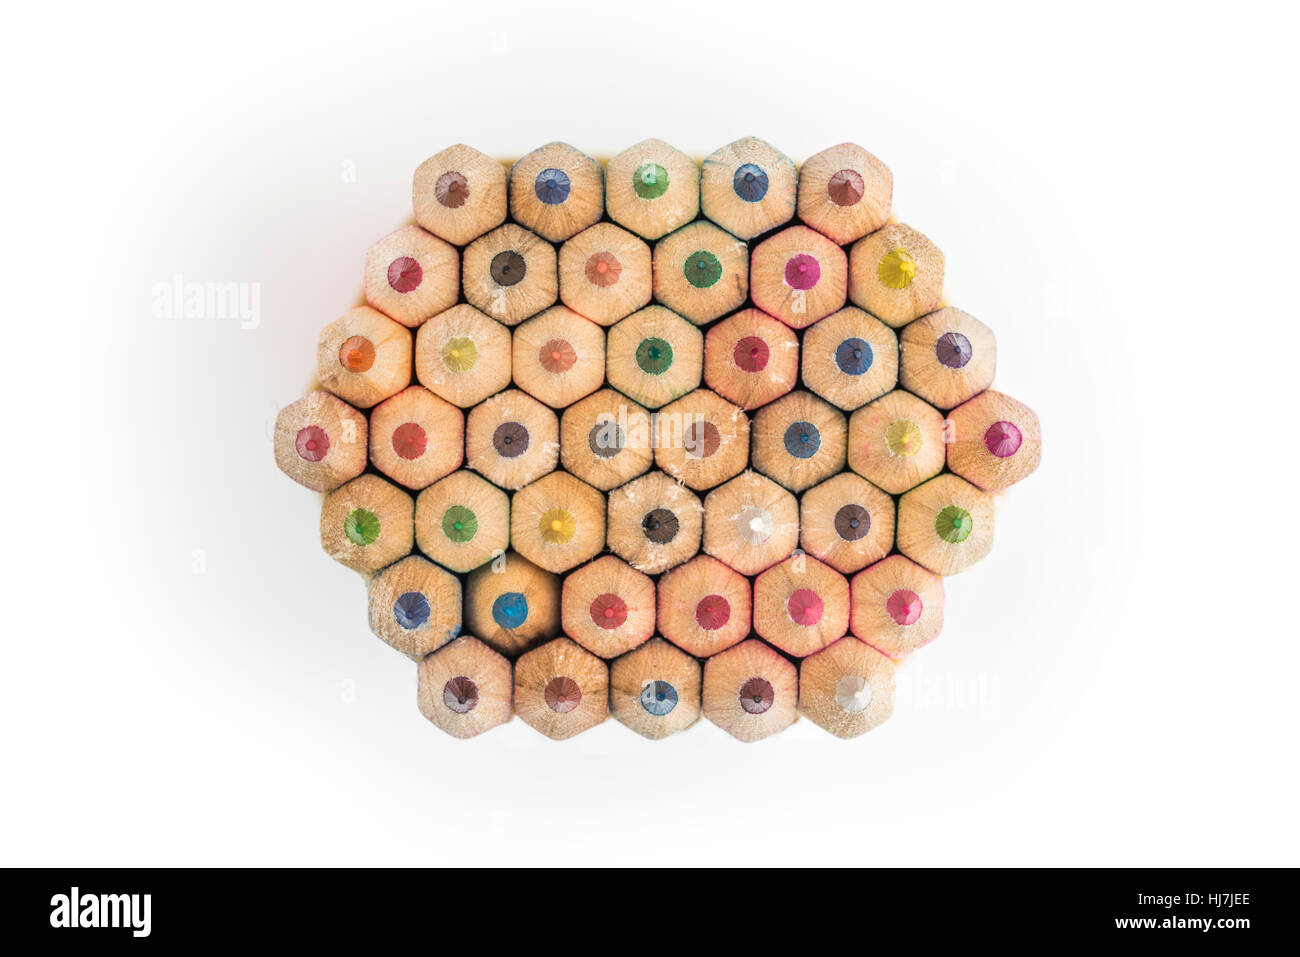 Colouring pencils. Stack of neatly arranged children/s coloured pencils seen from above isolated on white background - Stock Image